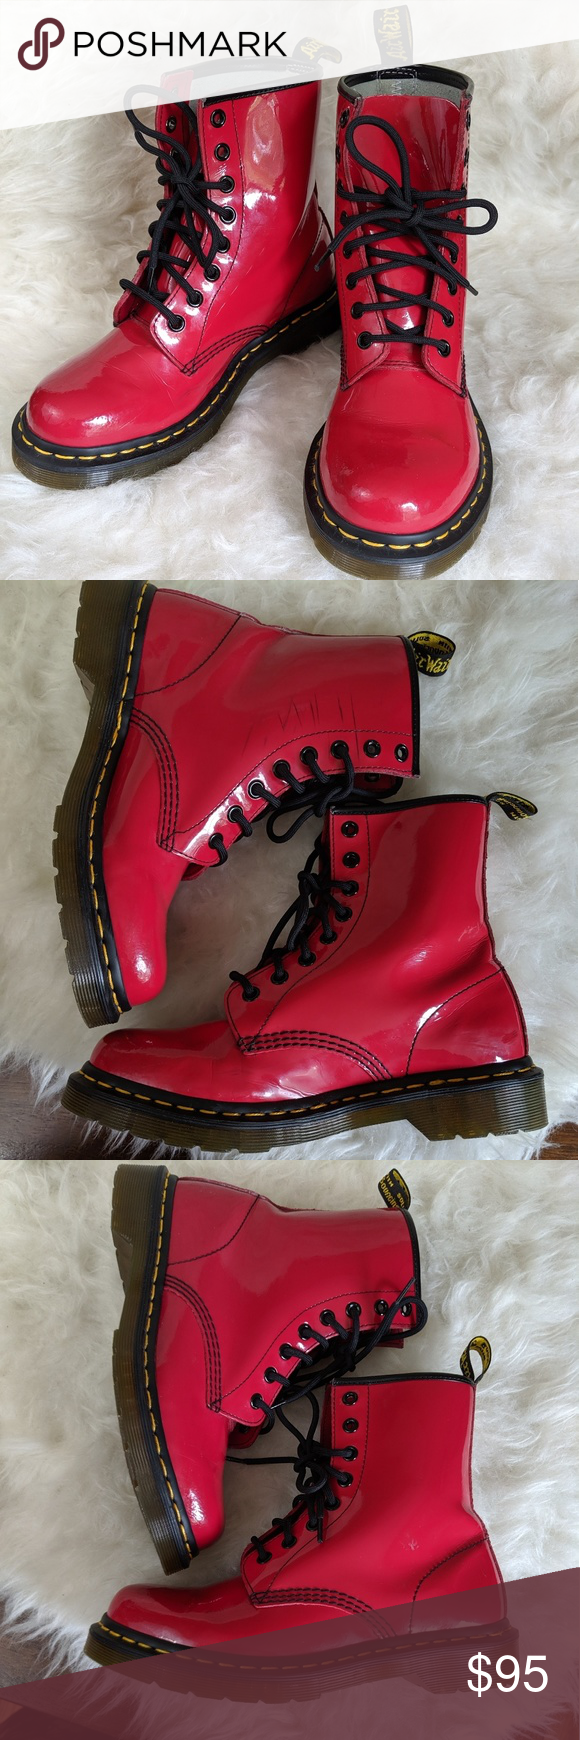 DM Martens Red Patent Leather Boots 7